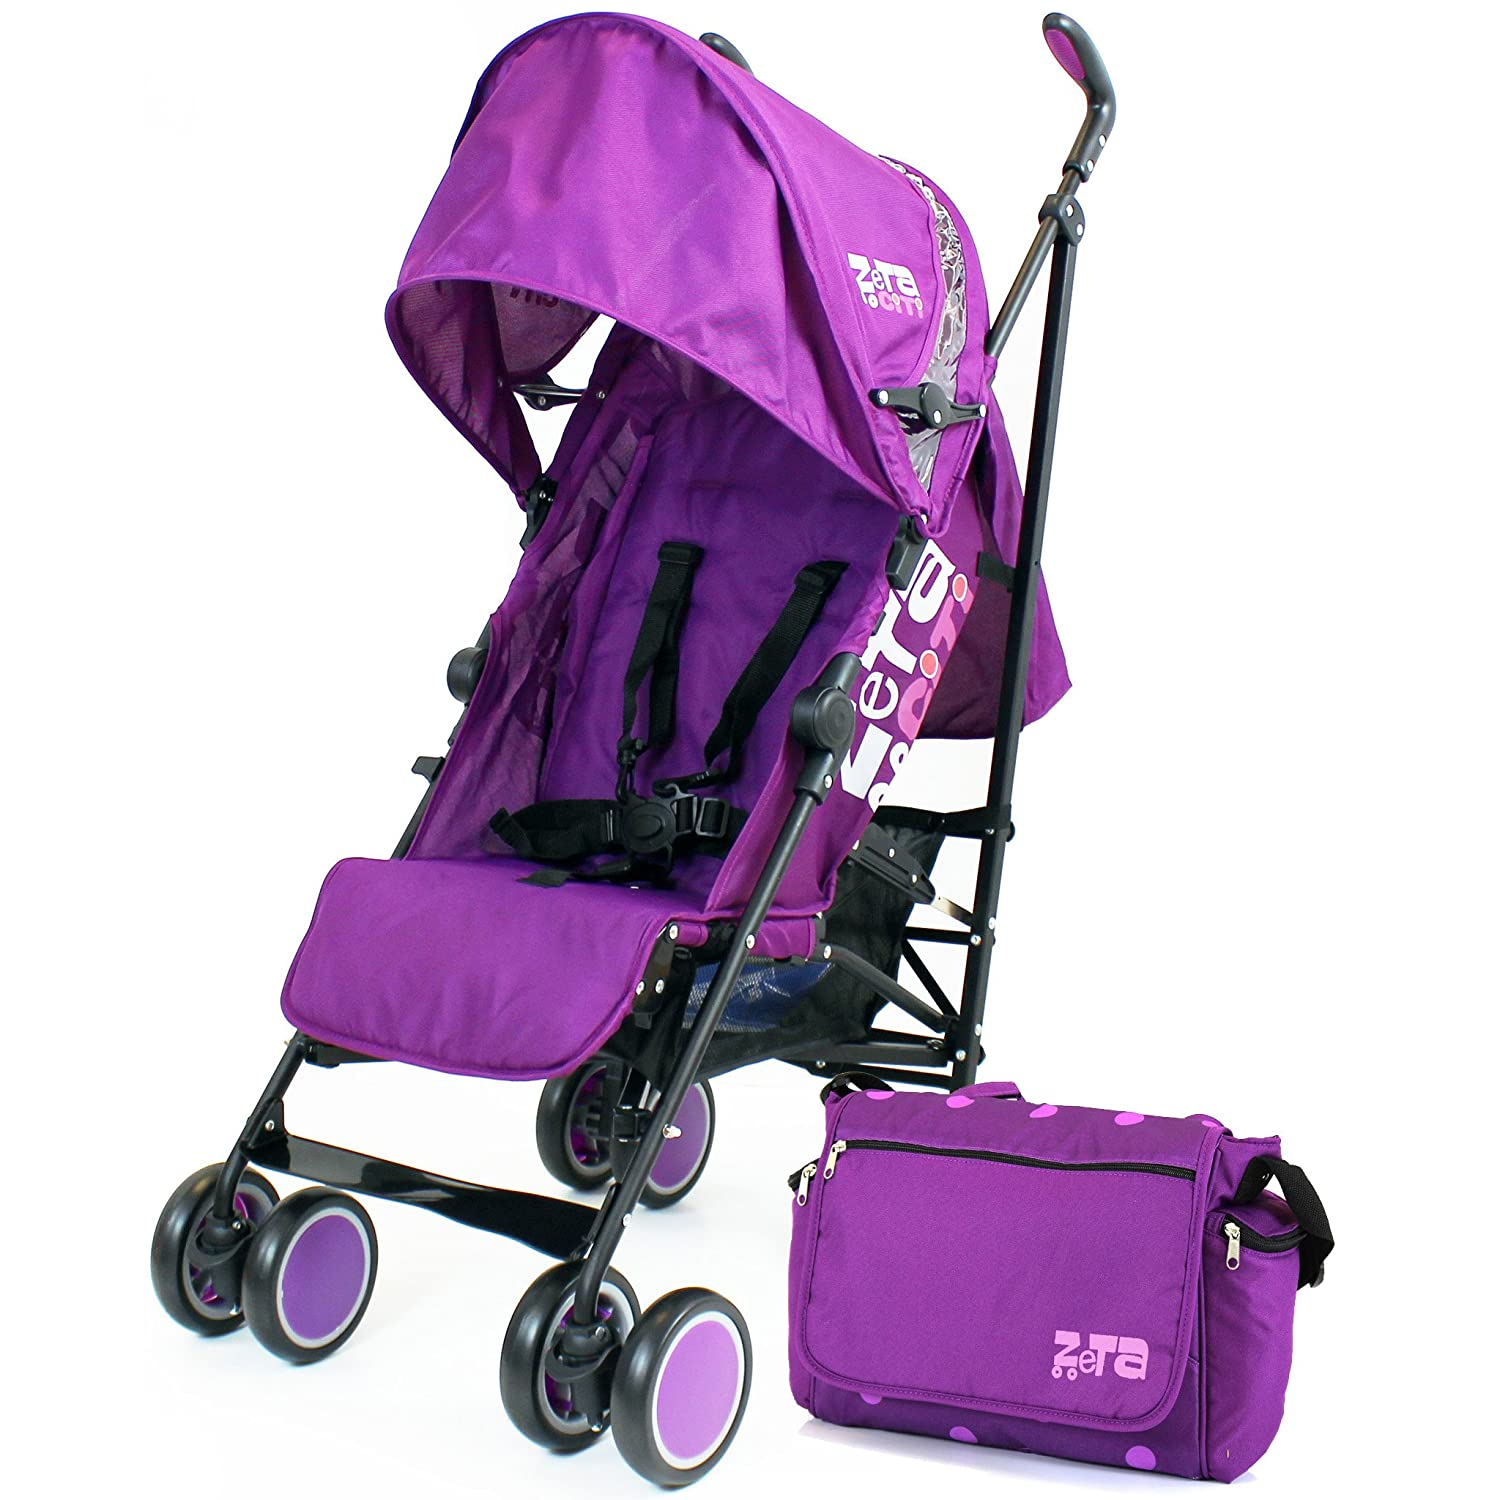 Zeta Citi Stroller Buggy Pushchair Plum Complete with Bag